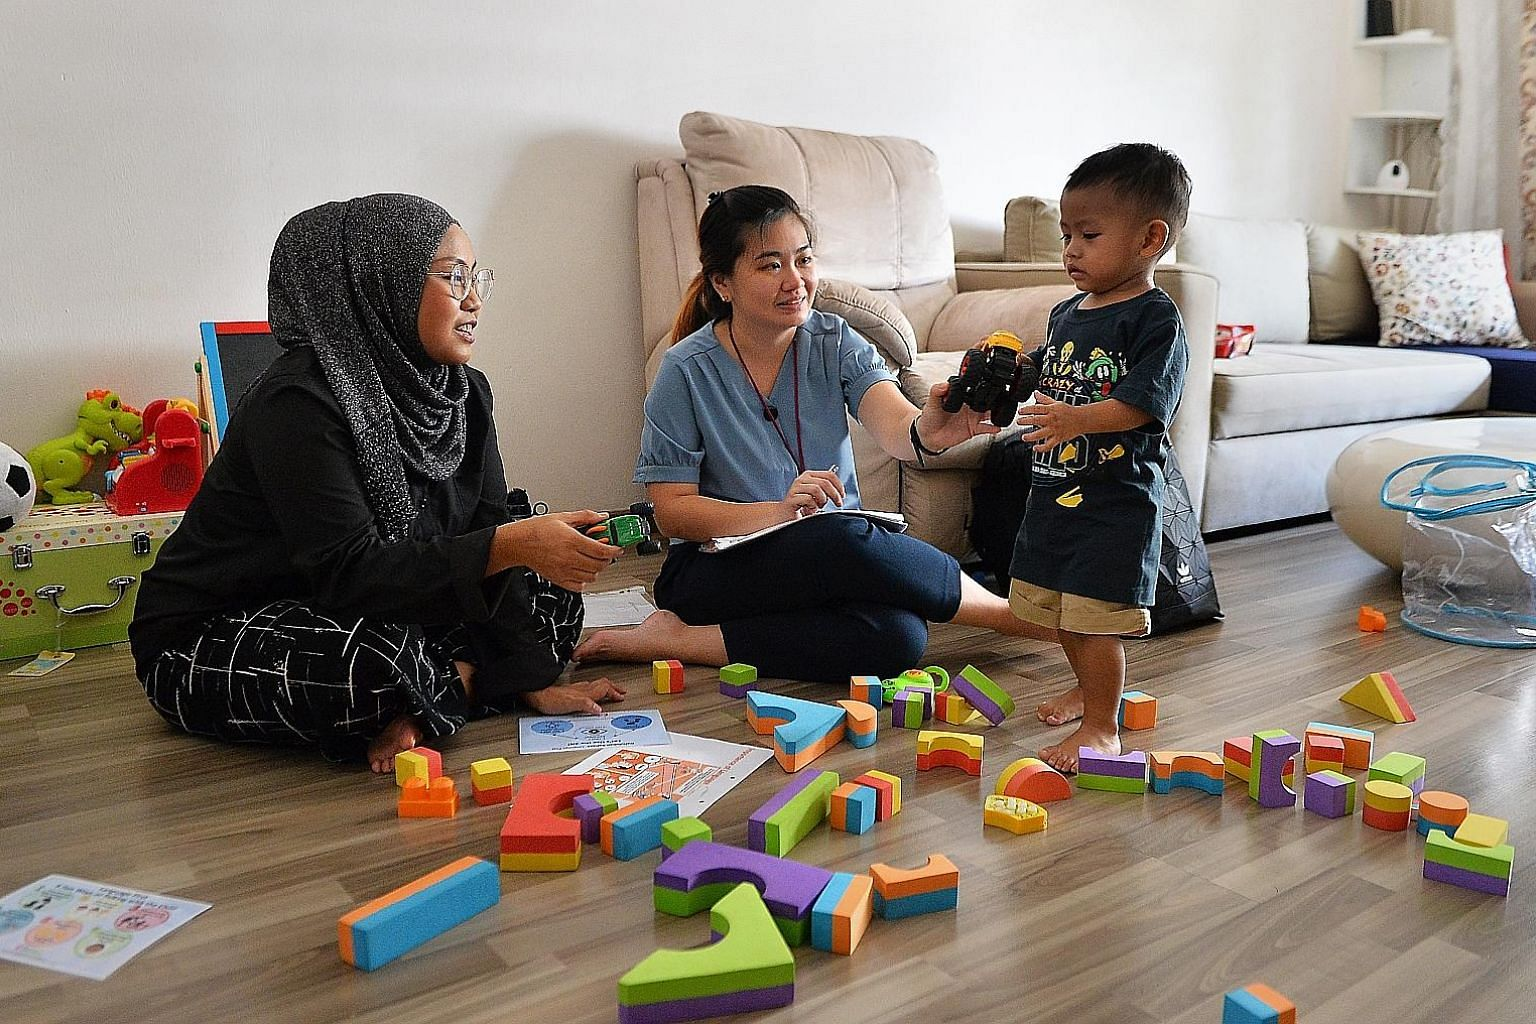 KidStart home visitor Lee Wei Qi, 32, interacting with 19-month-old Ae'dan Raphael. She has helped his mother, Ms Calista Azman, 34, by sharing parenting tips and strategies for her son's development. One feature of KidStart is that support and advic